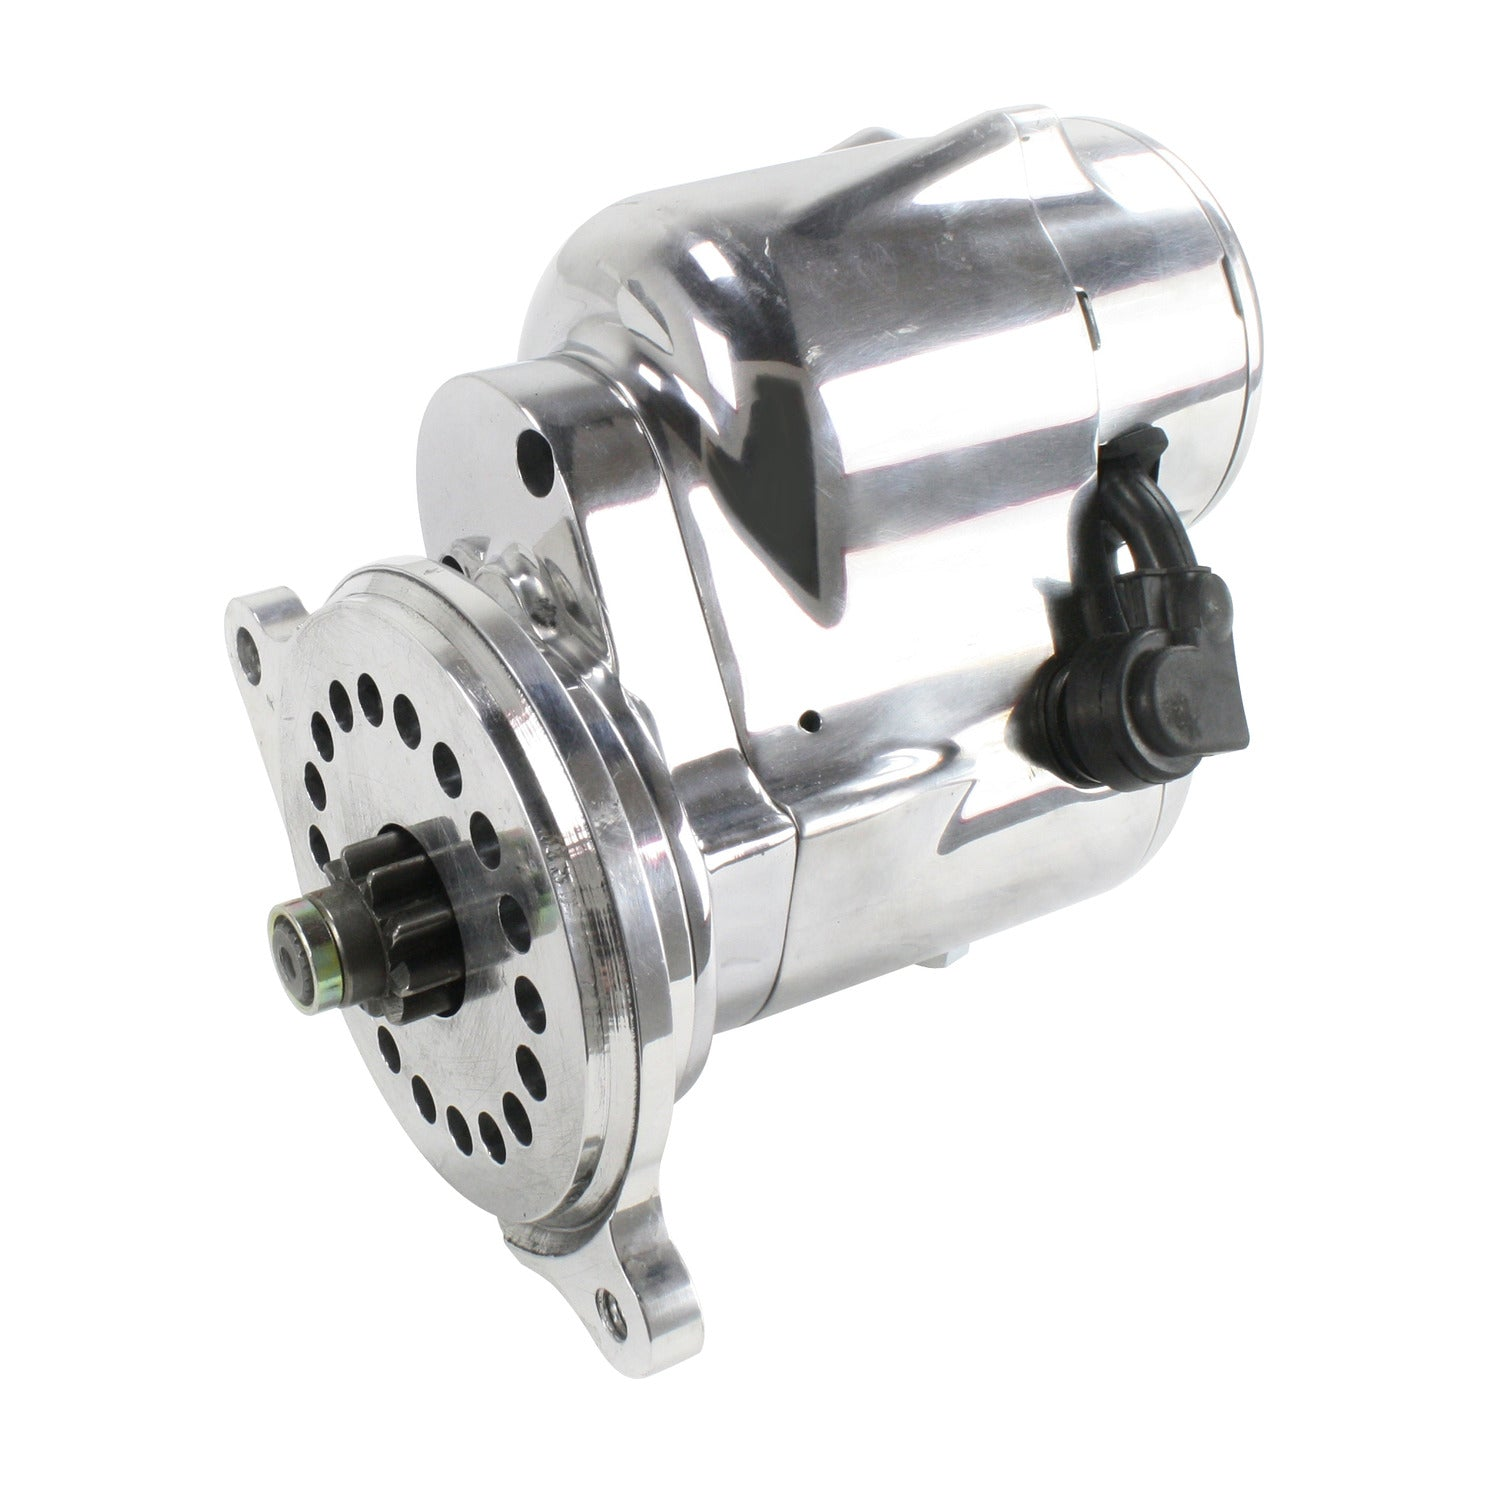 "Pertronix part number S3004P Contour Starter Ford 1963-2001 221-302/5.0L, 351W and 351C with automatic and 5 speed manual trans (157T or 164T flywheel), 3/4"" offset polished"